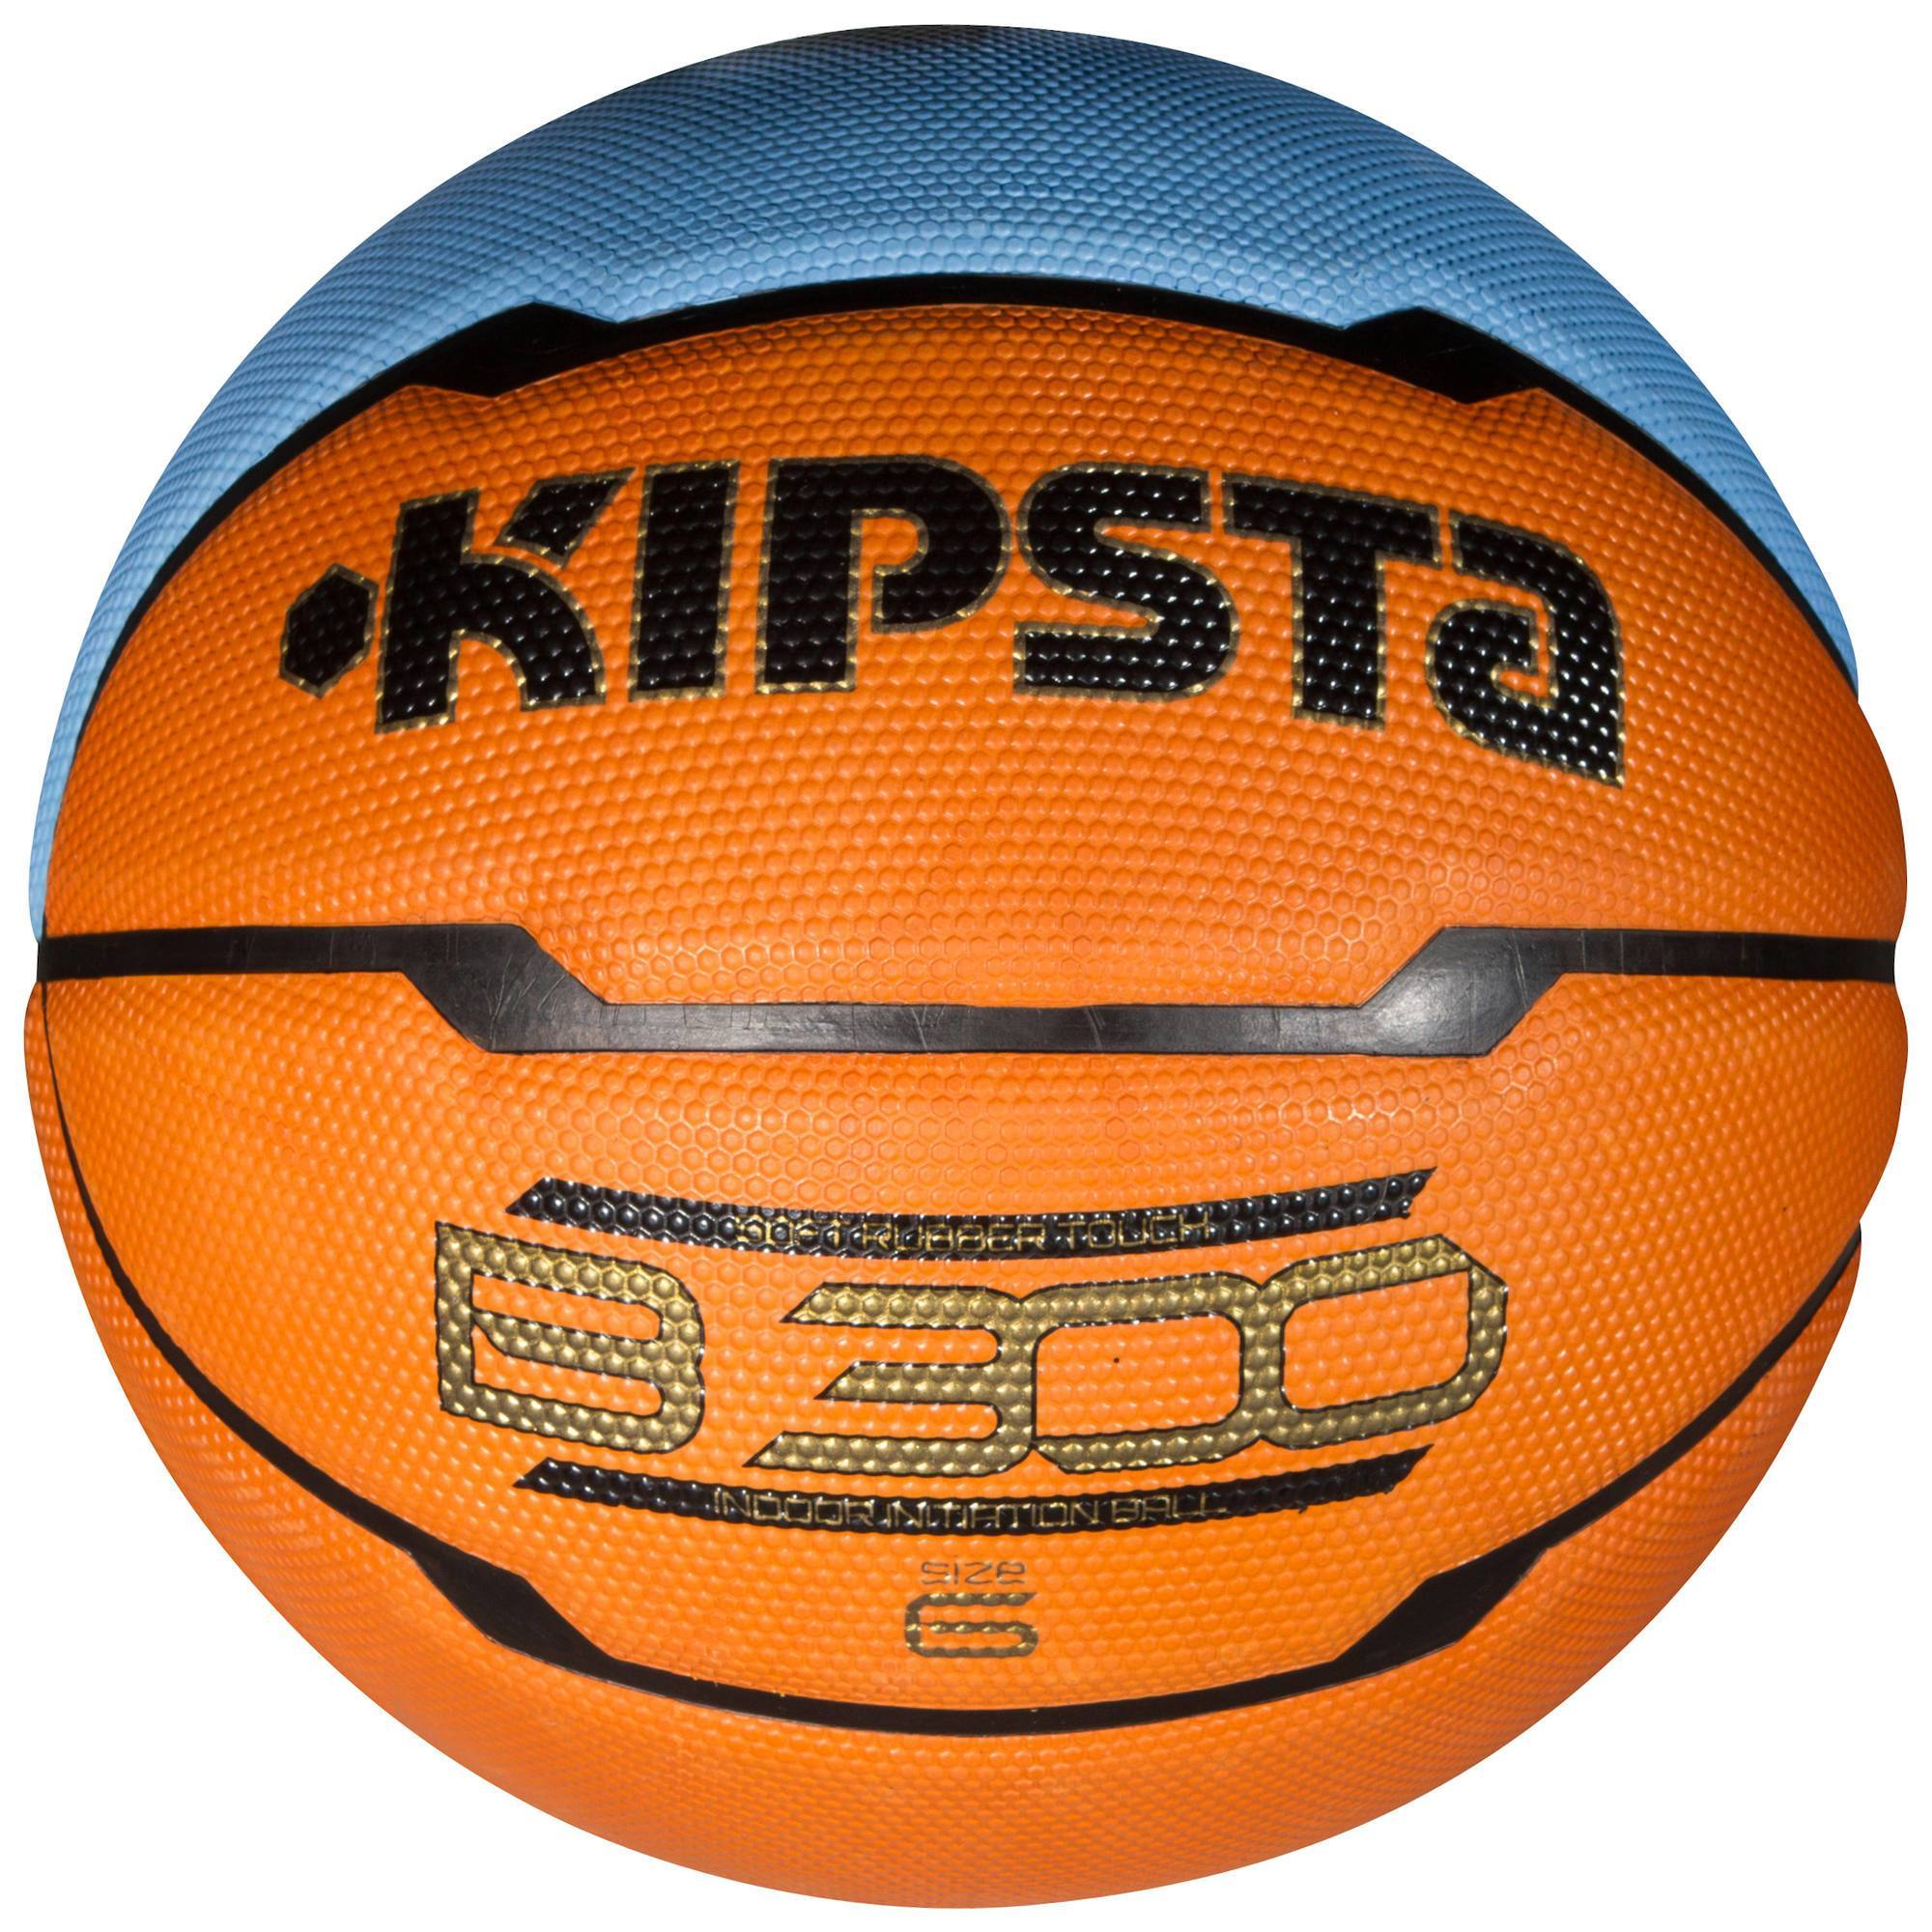 BALLON BASKET-BALL B300 TAILLE 6 ENTRAINEMENT